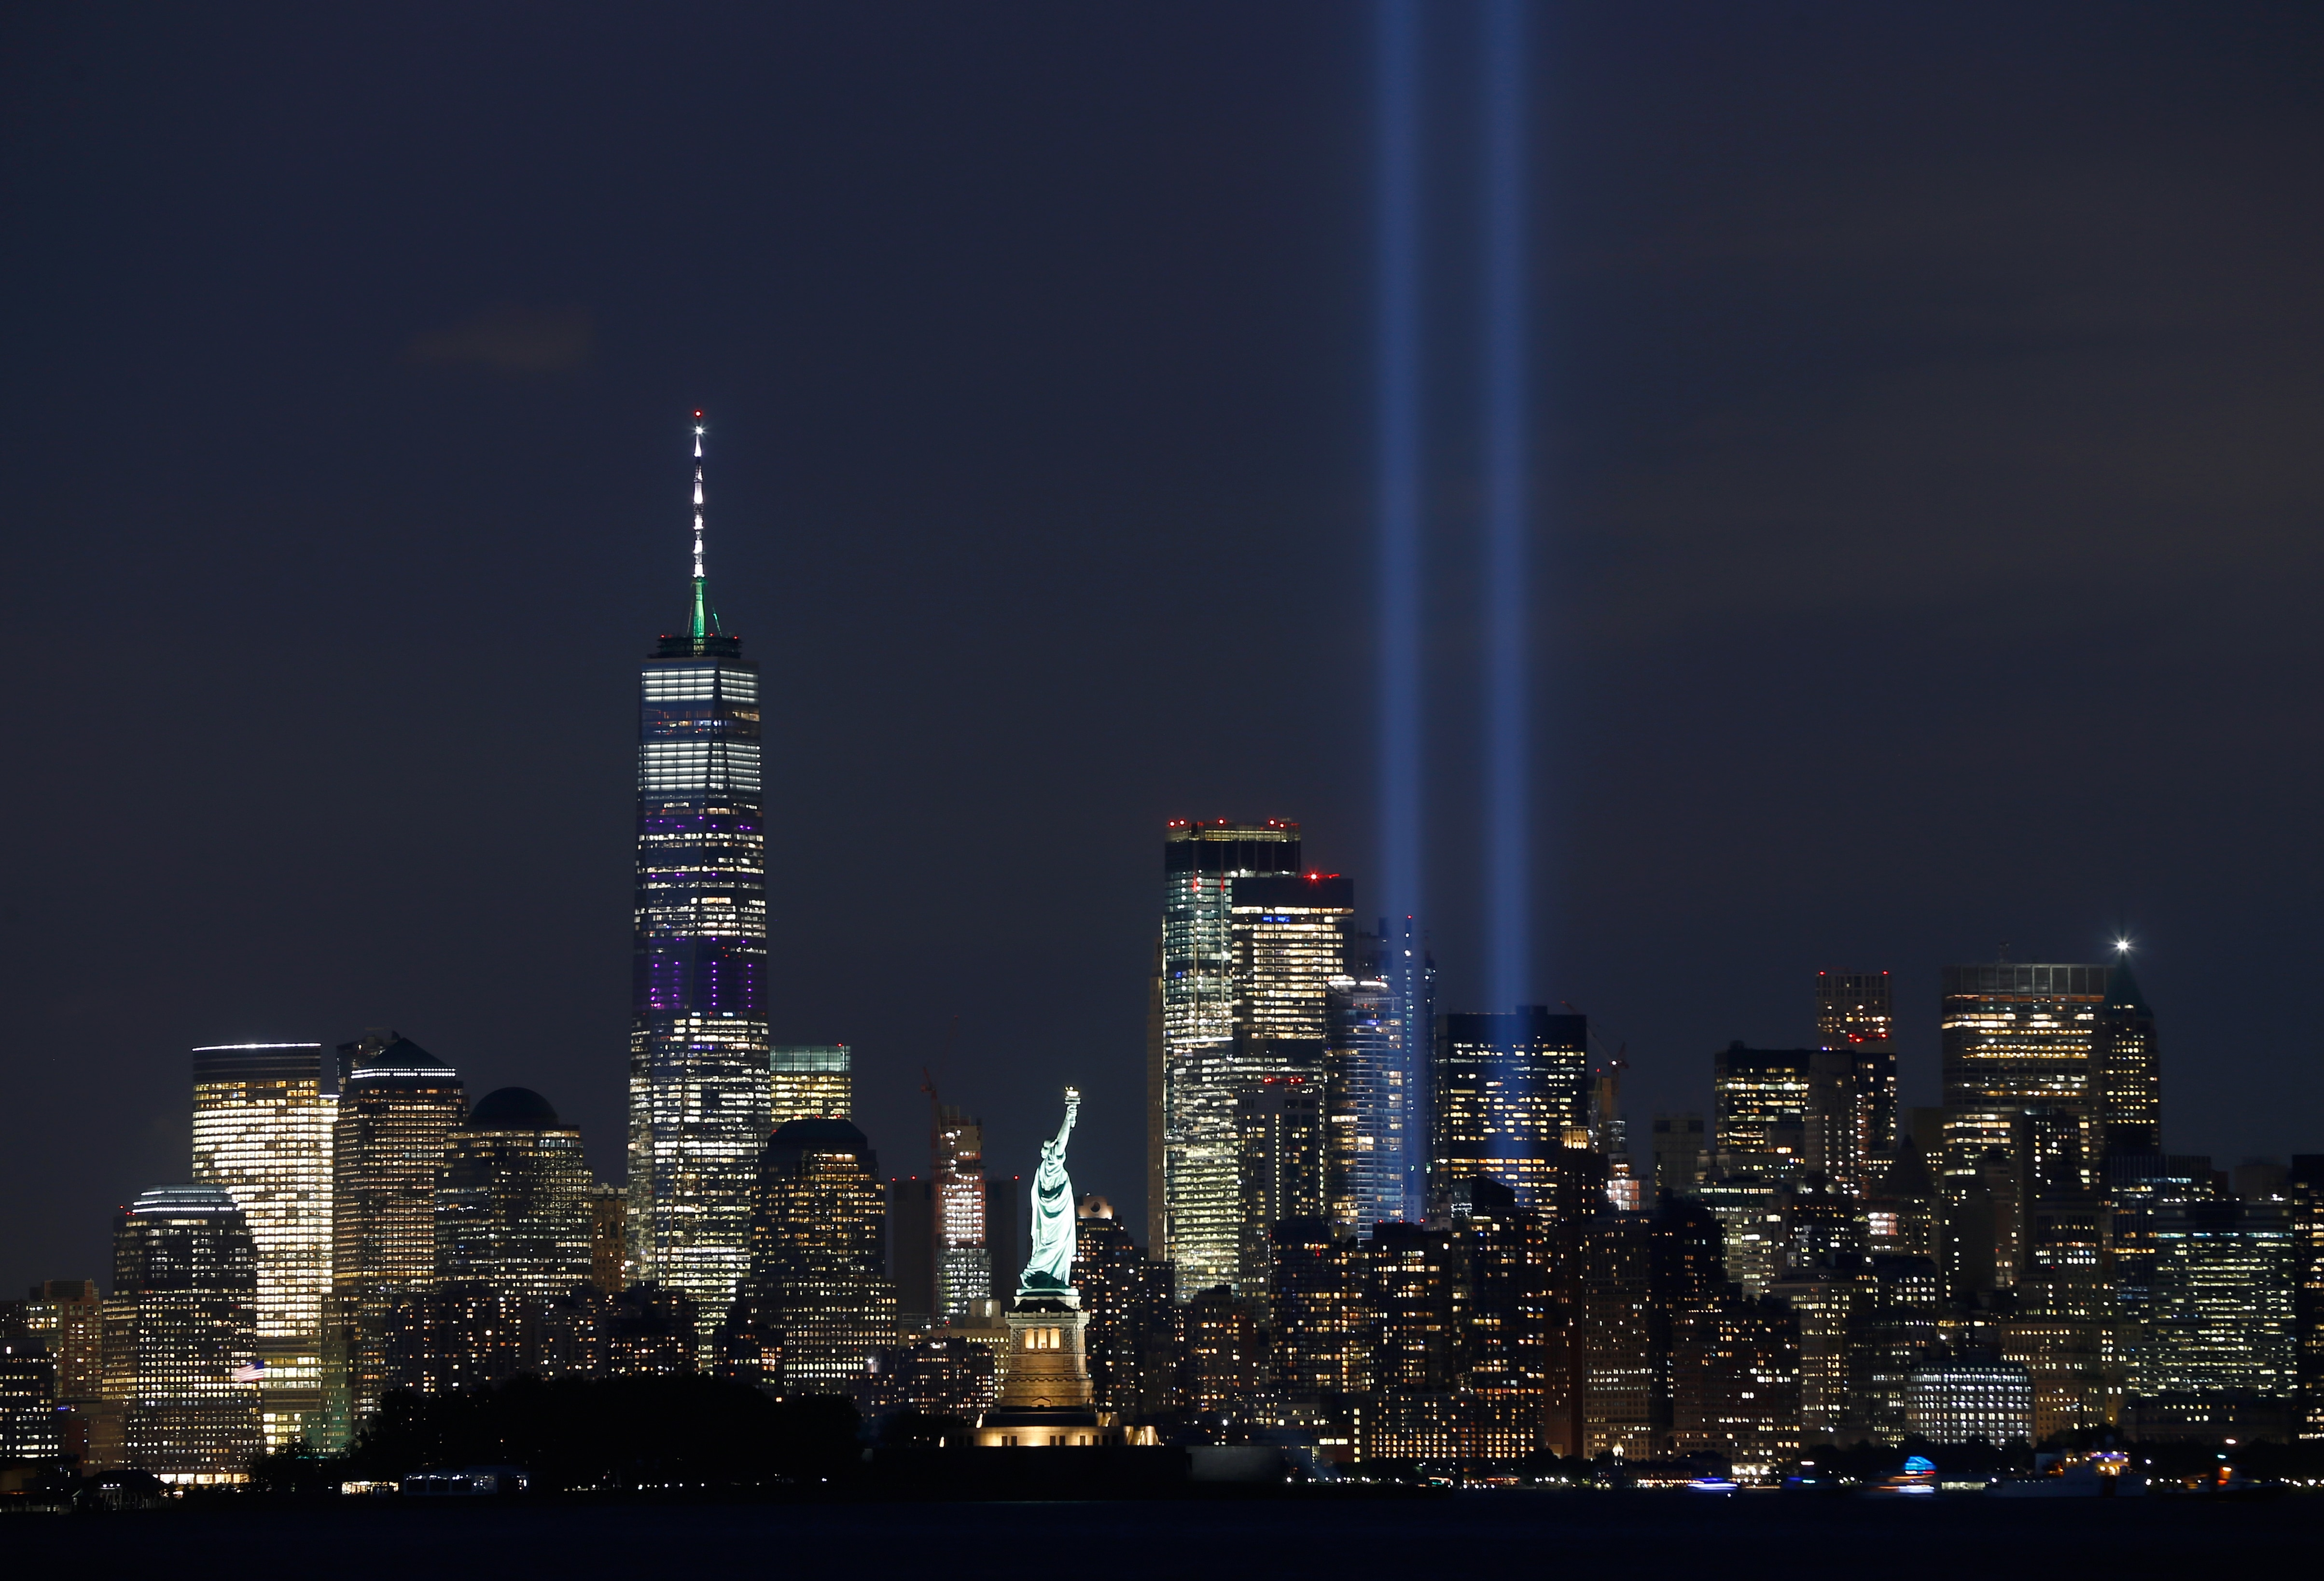 The annual Triibute in Light is illuminated on the skyline of lower Manhattan on the eve of the 18th anniversary of the 9/11 attacks in New York City.